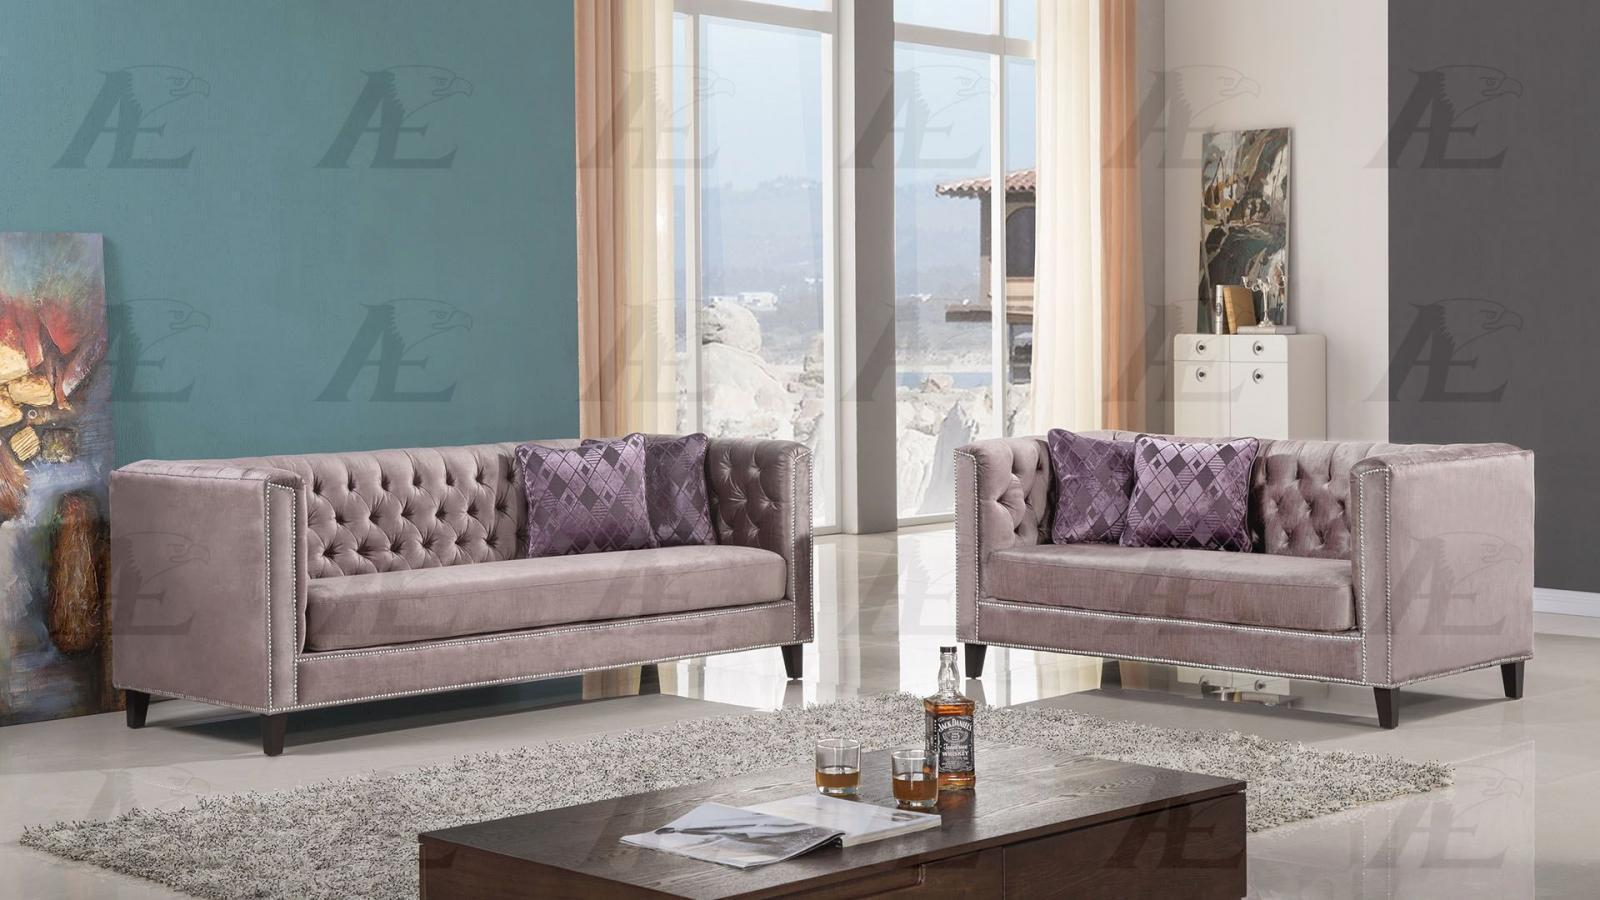 American Eagle AE2373-DB Dusty Brown Fabric Sofa and Loveseat Set 2Pcs